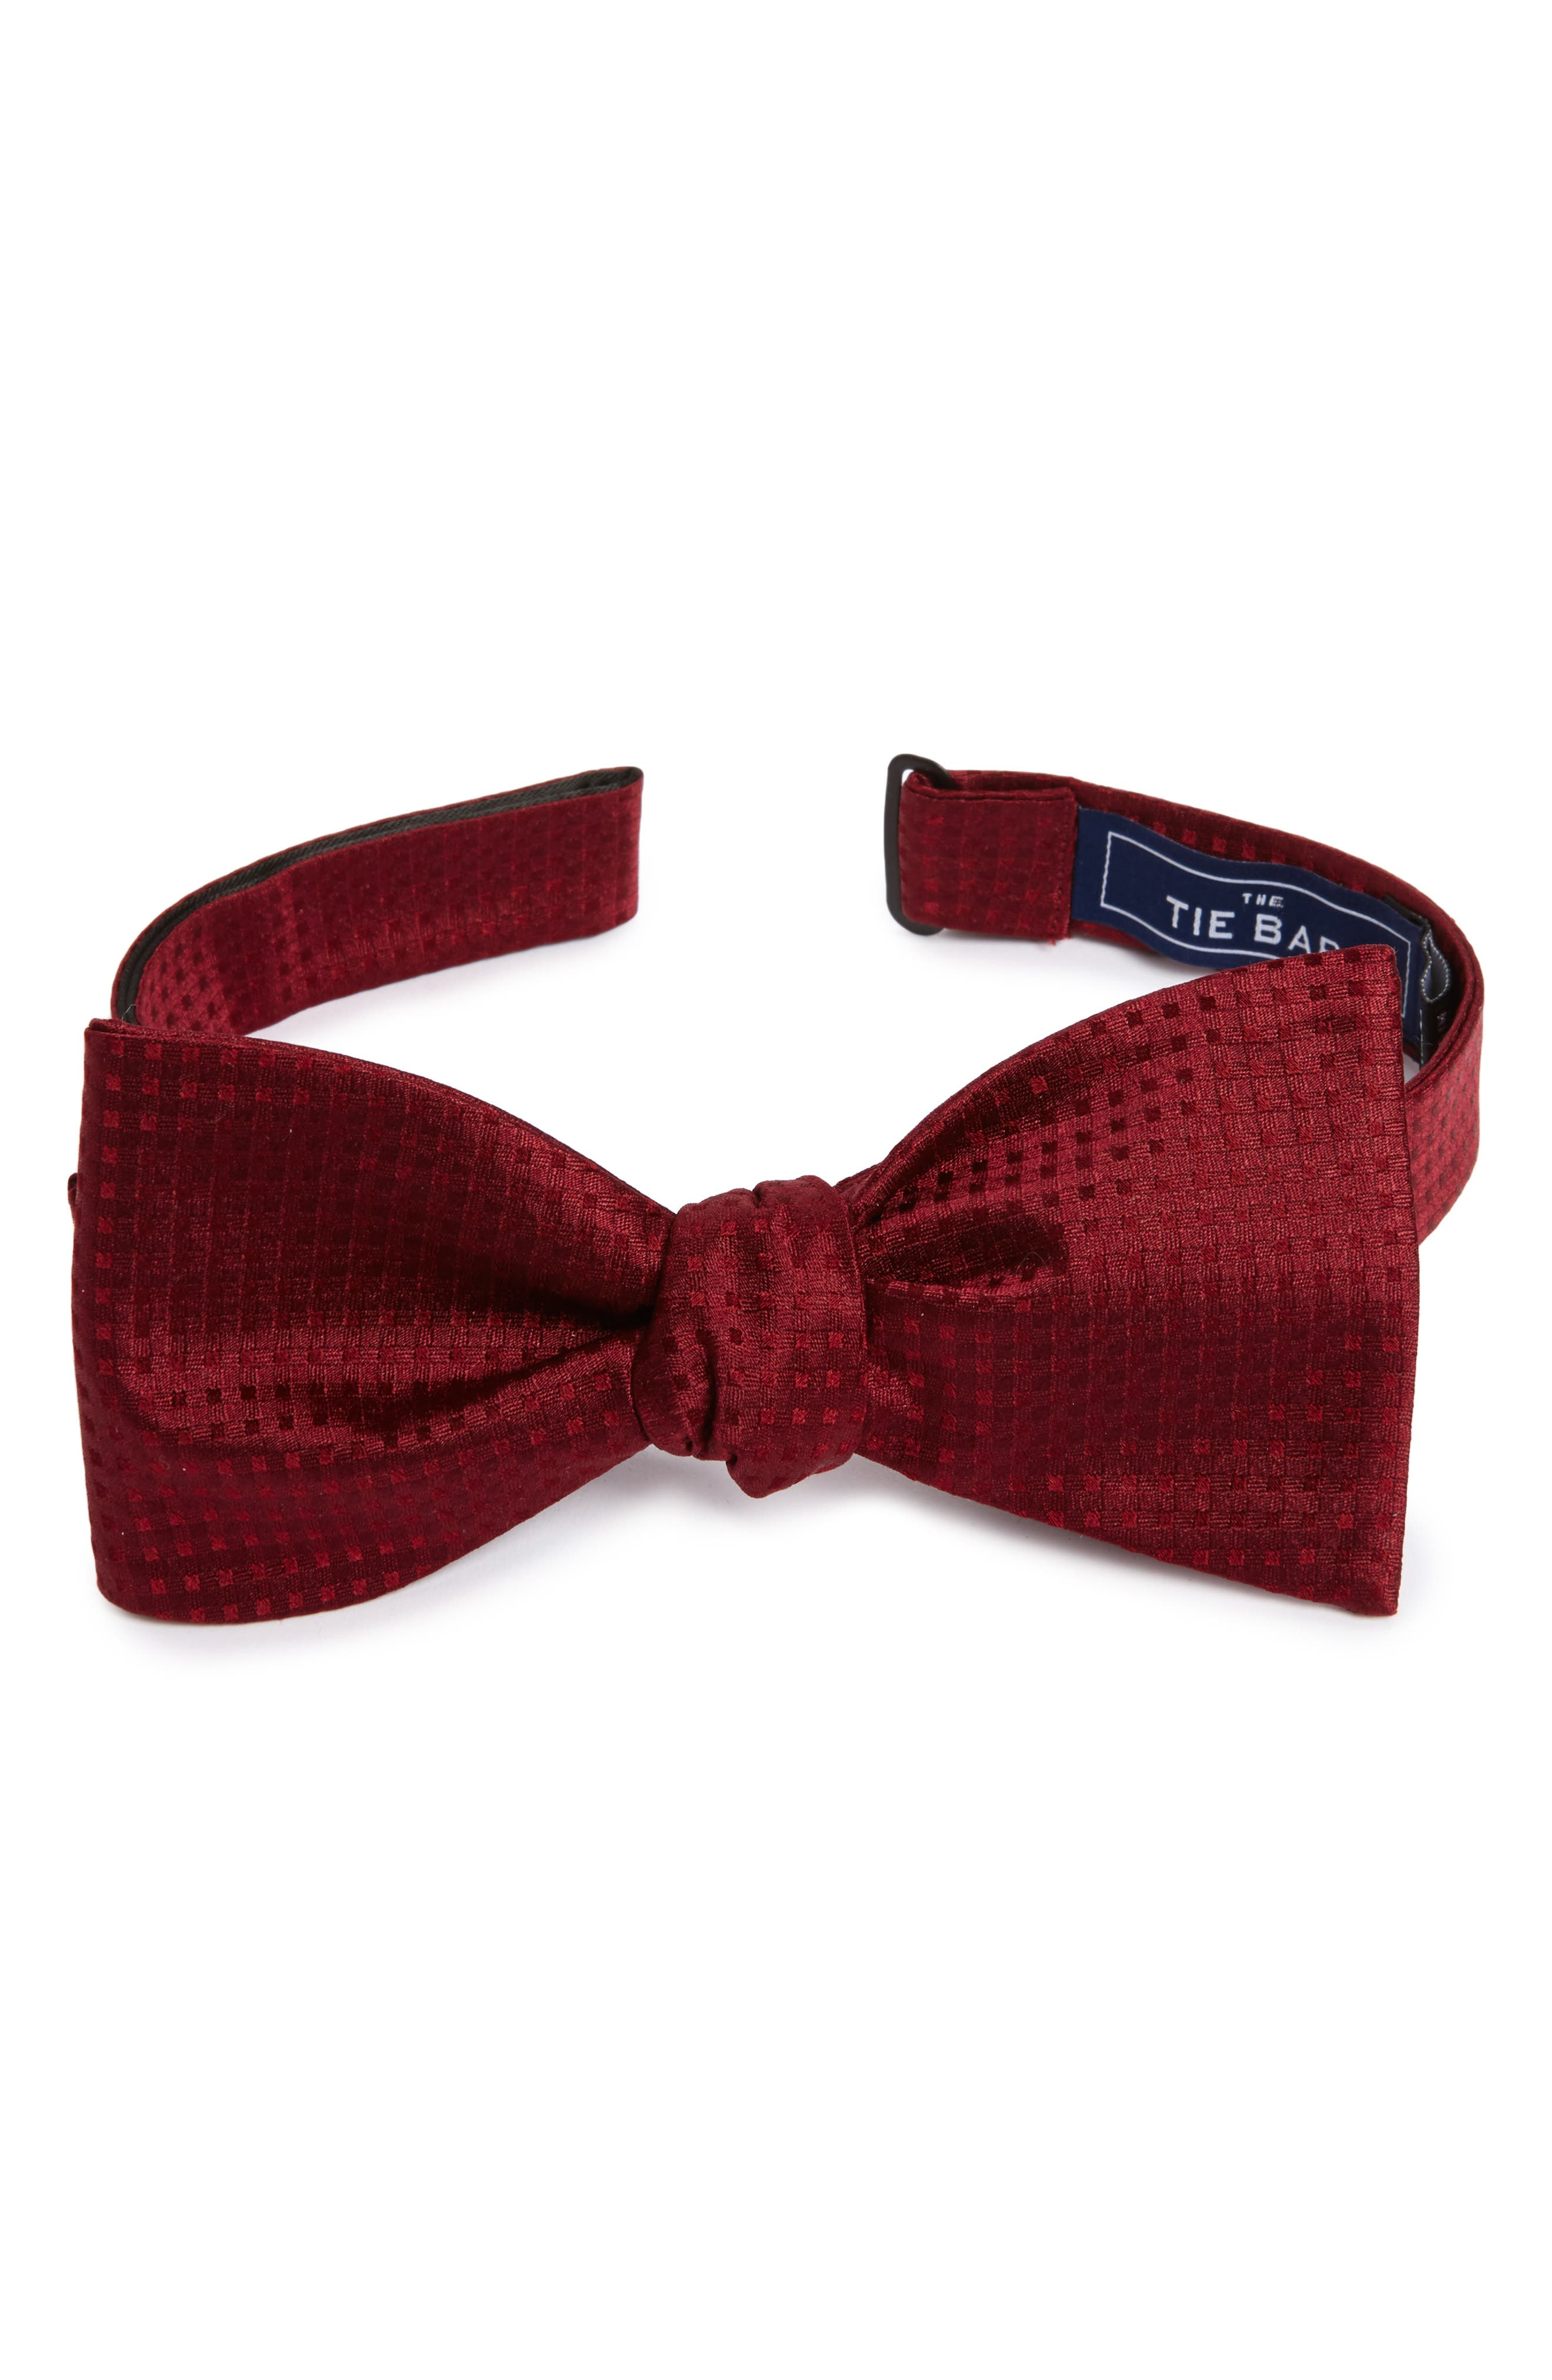 Main Image - The Tie Bar Check Mates Silk Bow Tie